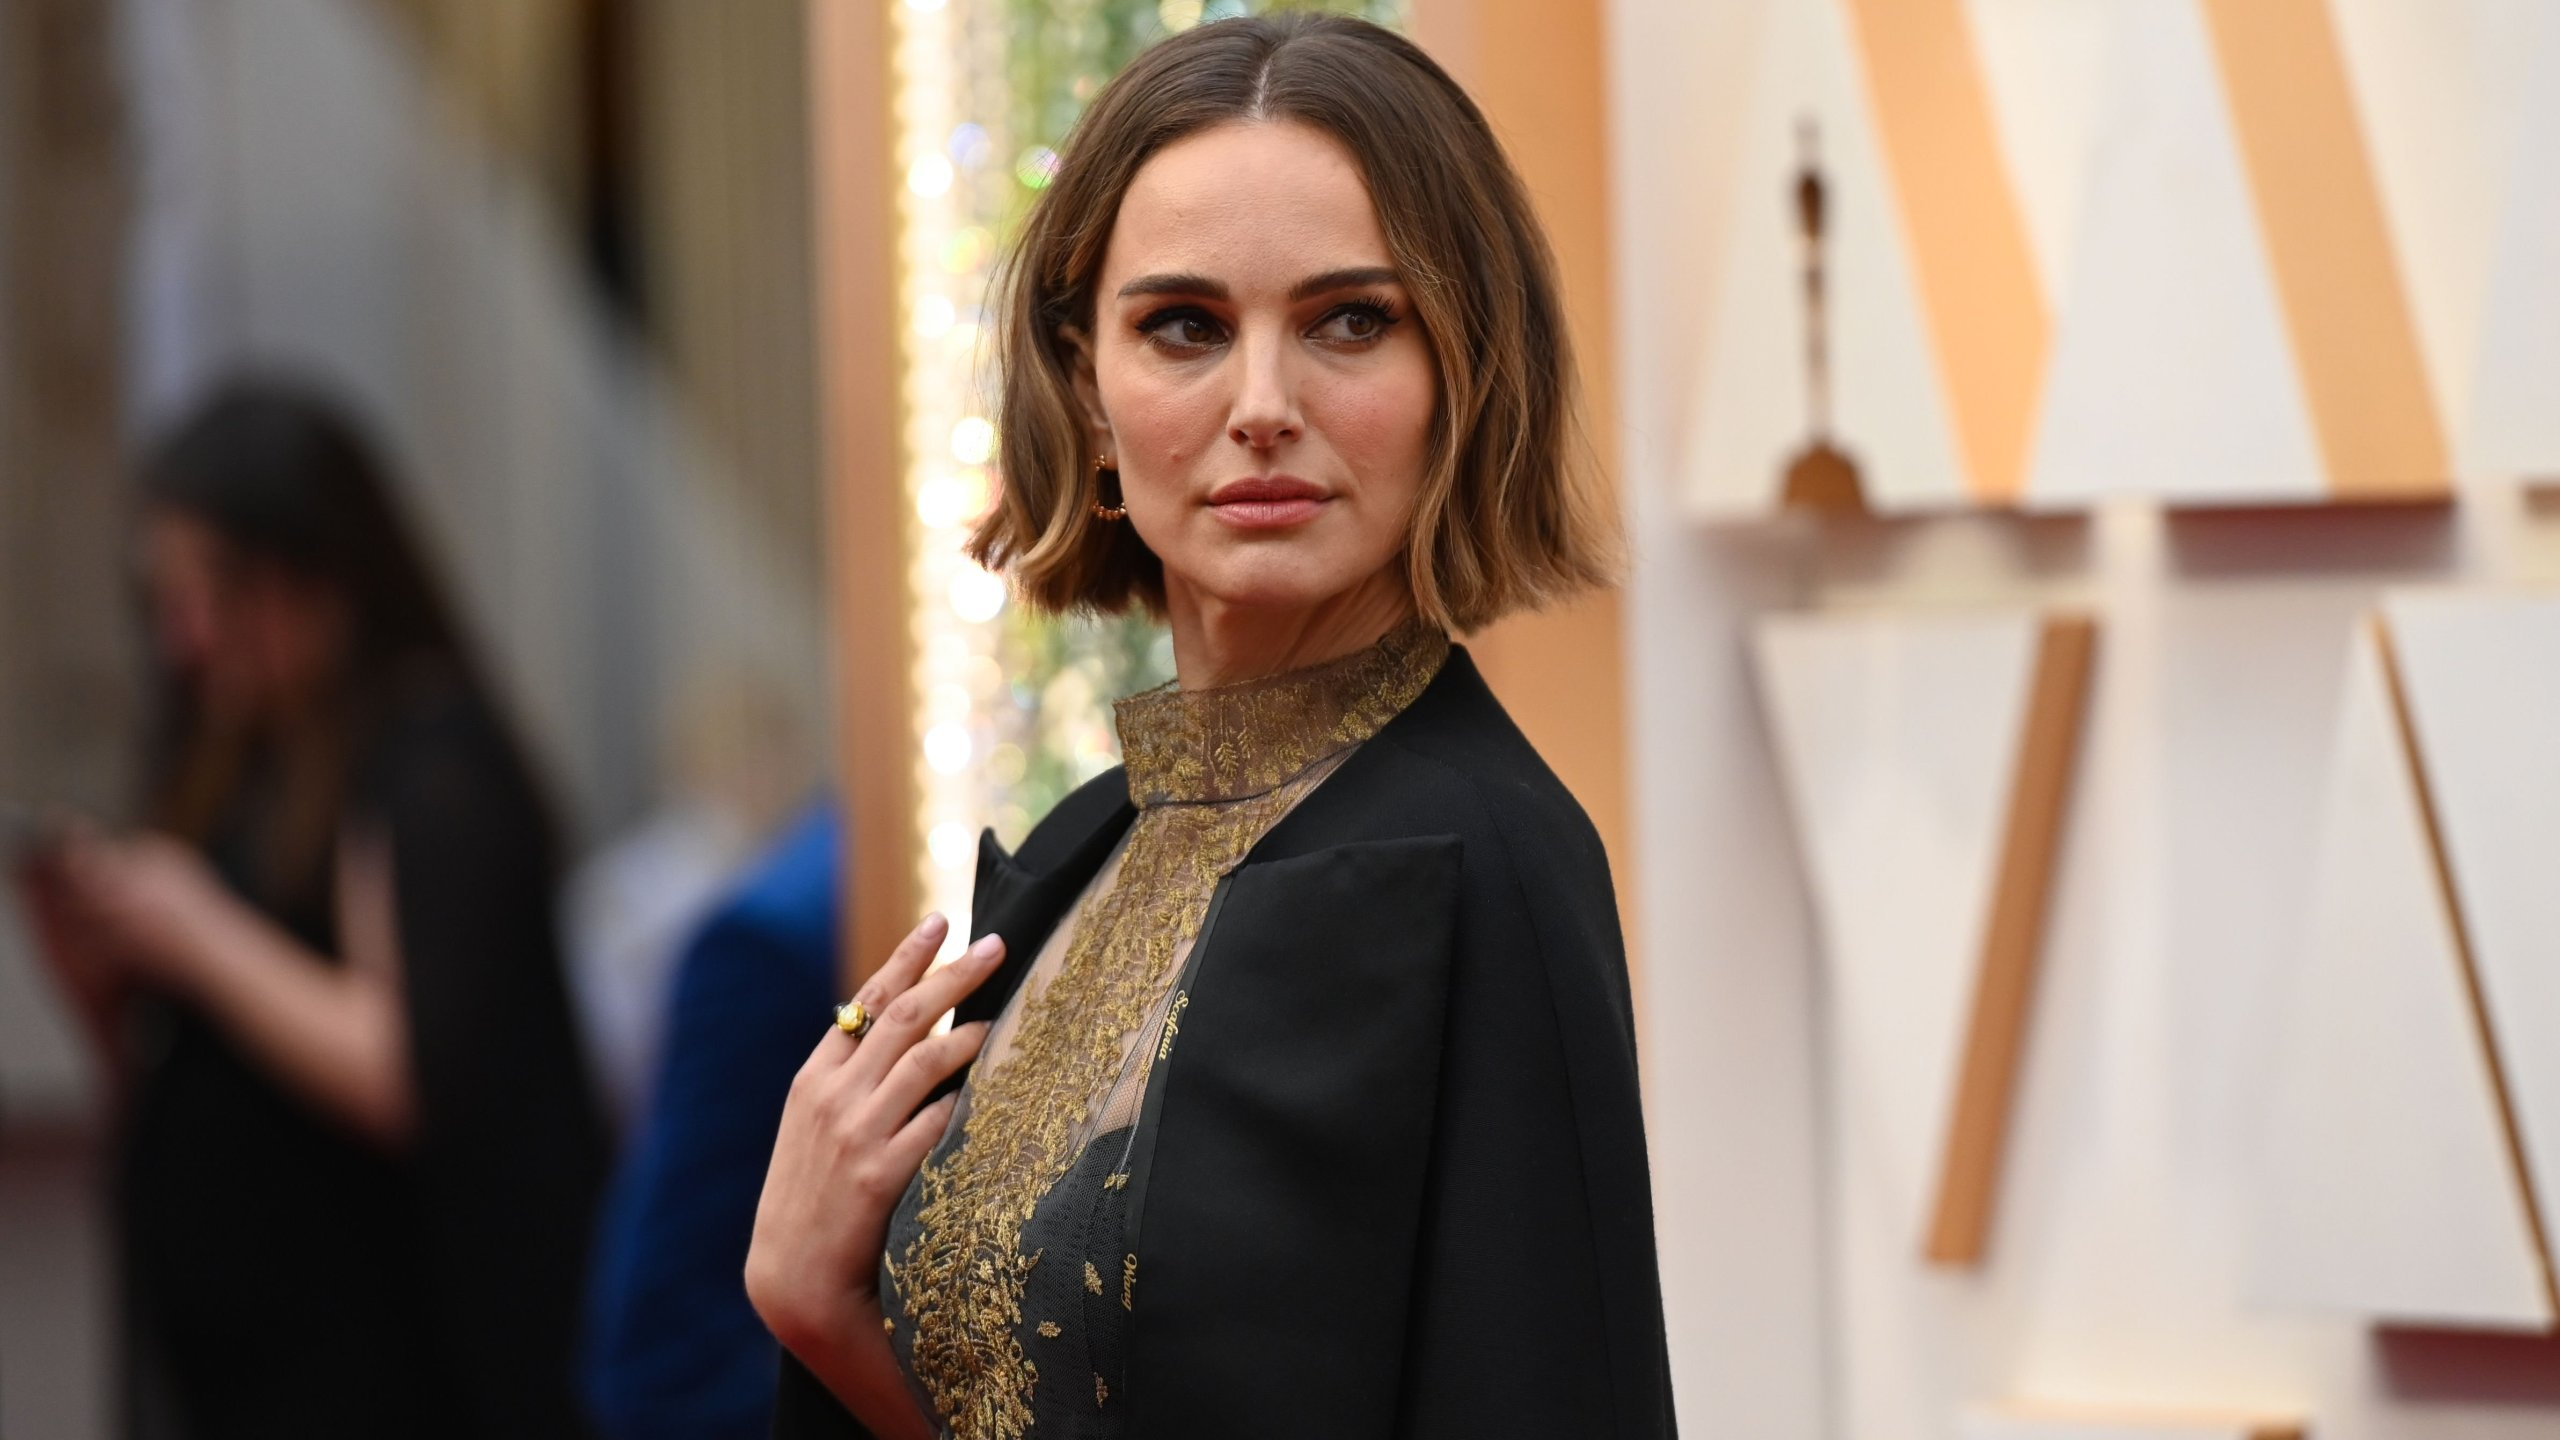 Natalie Portman arrives for the 92nd Oscars at the Dolby Theatre in Hollywood on Feb. 9, 2020. (Credit: ROBYN BECK/AFP via Getty Images)